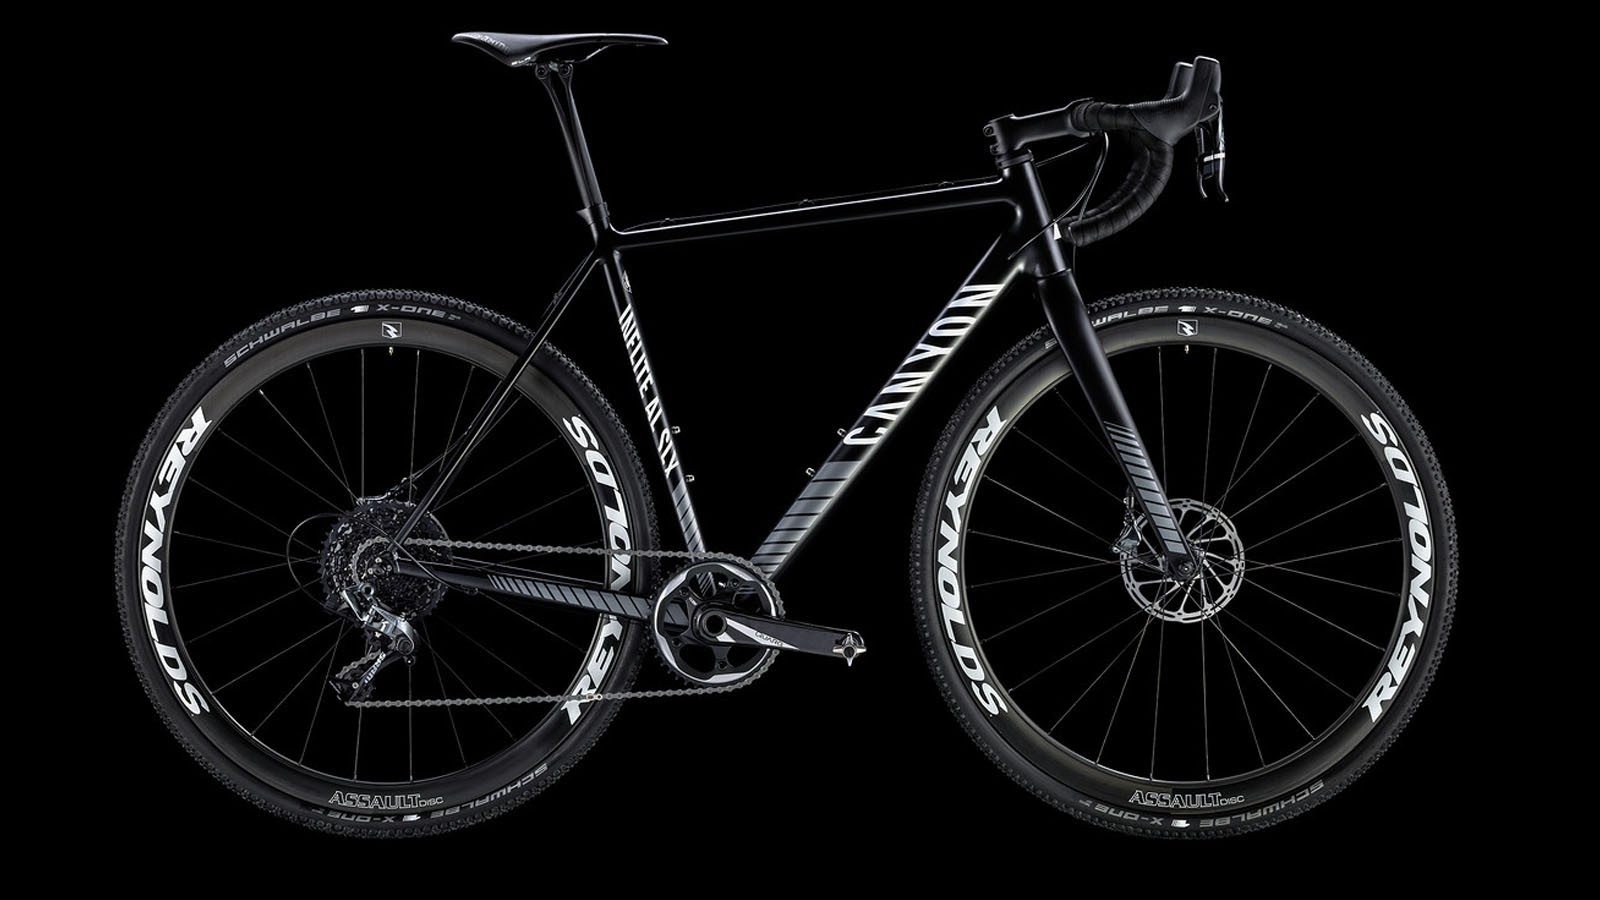 The Inflite AL SLX 9.0 Pro Race is Canyon's flagship racer